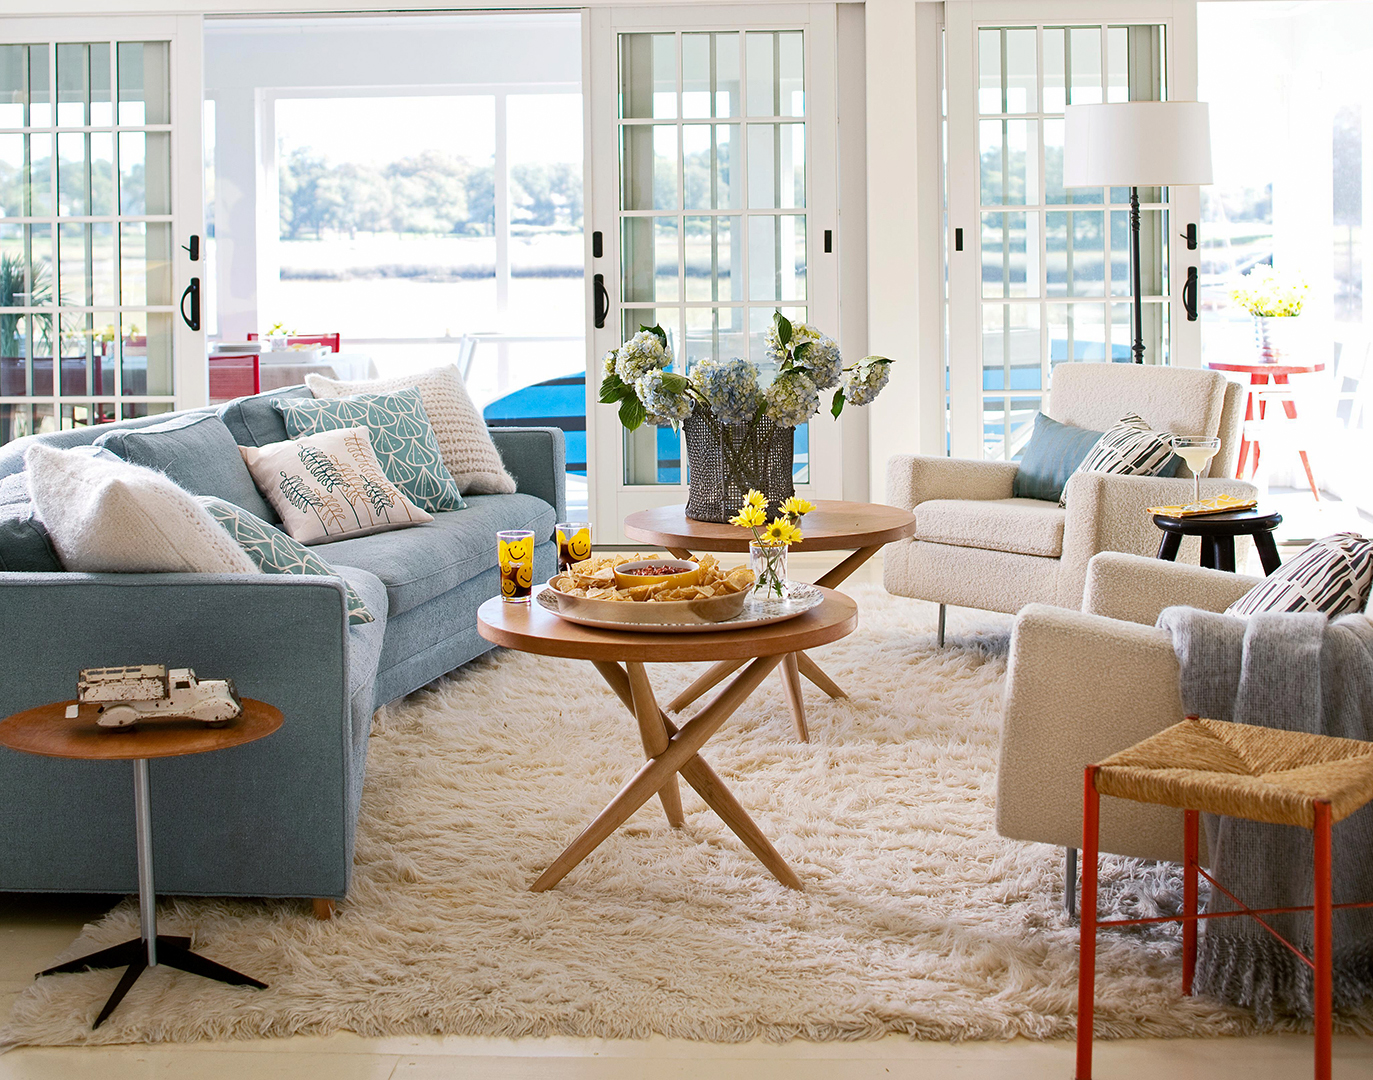 No-Fail Tricks for Arranging Furniture